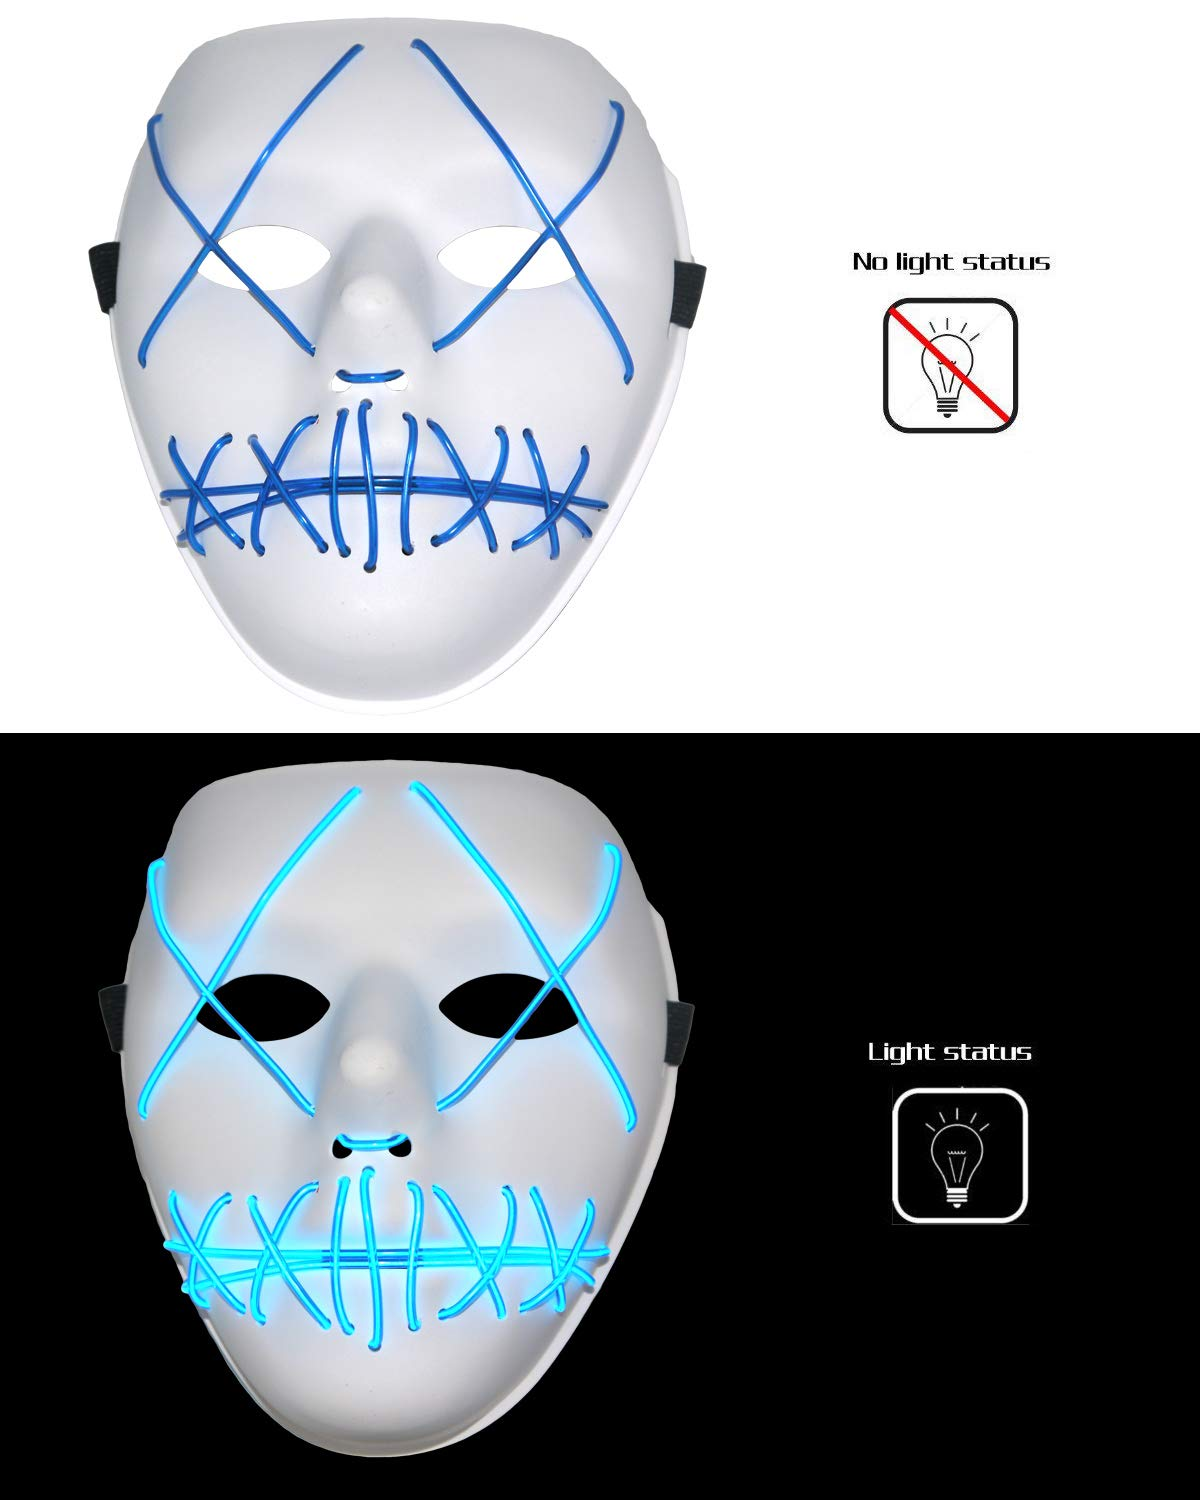 Scary Halloween Mask Cosplay LED Glow Scary EL Wire Light up Grin Masks for Festival Parties Costume (Blue)